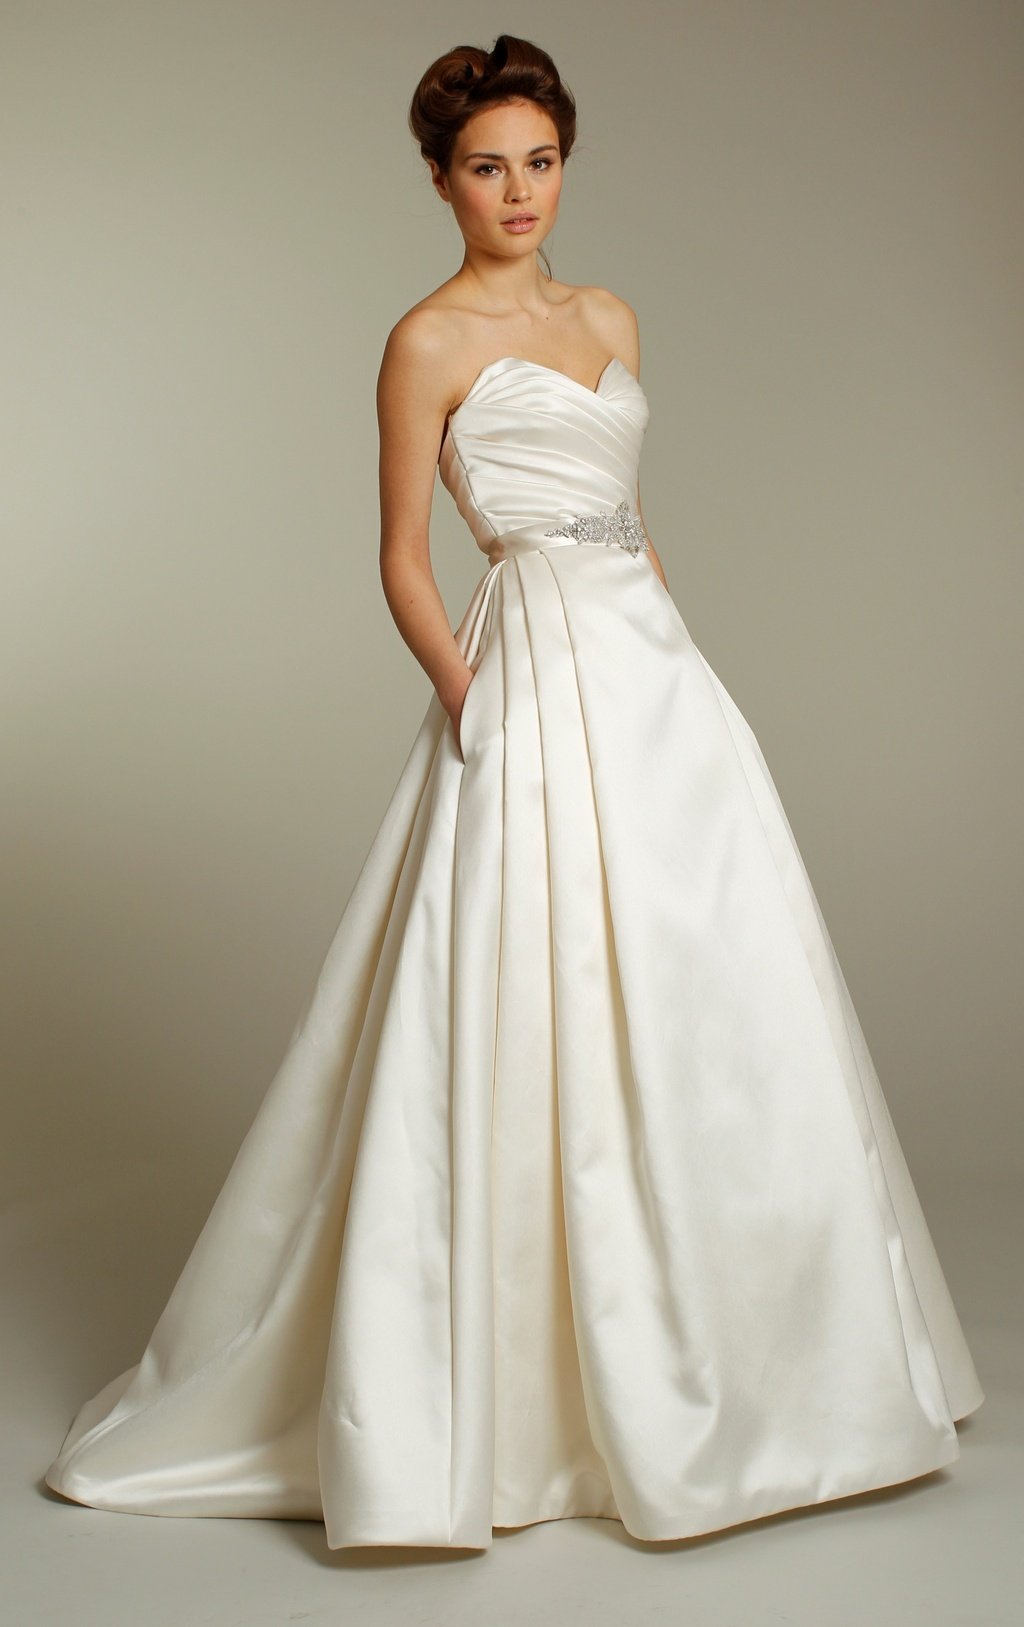 32cd40ba62b7 Classic ivory silk a-line wedding dress with embellished sash and  sweetheart neckline